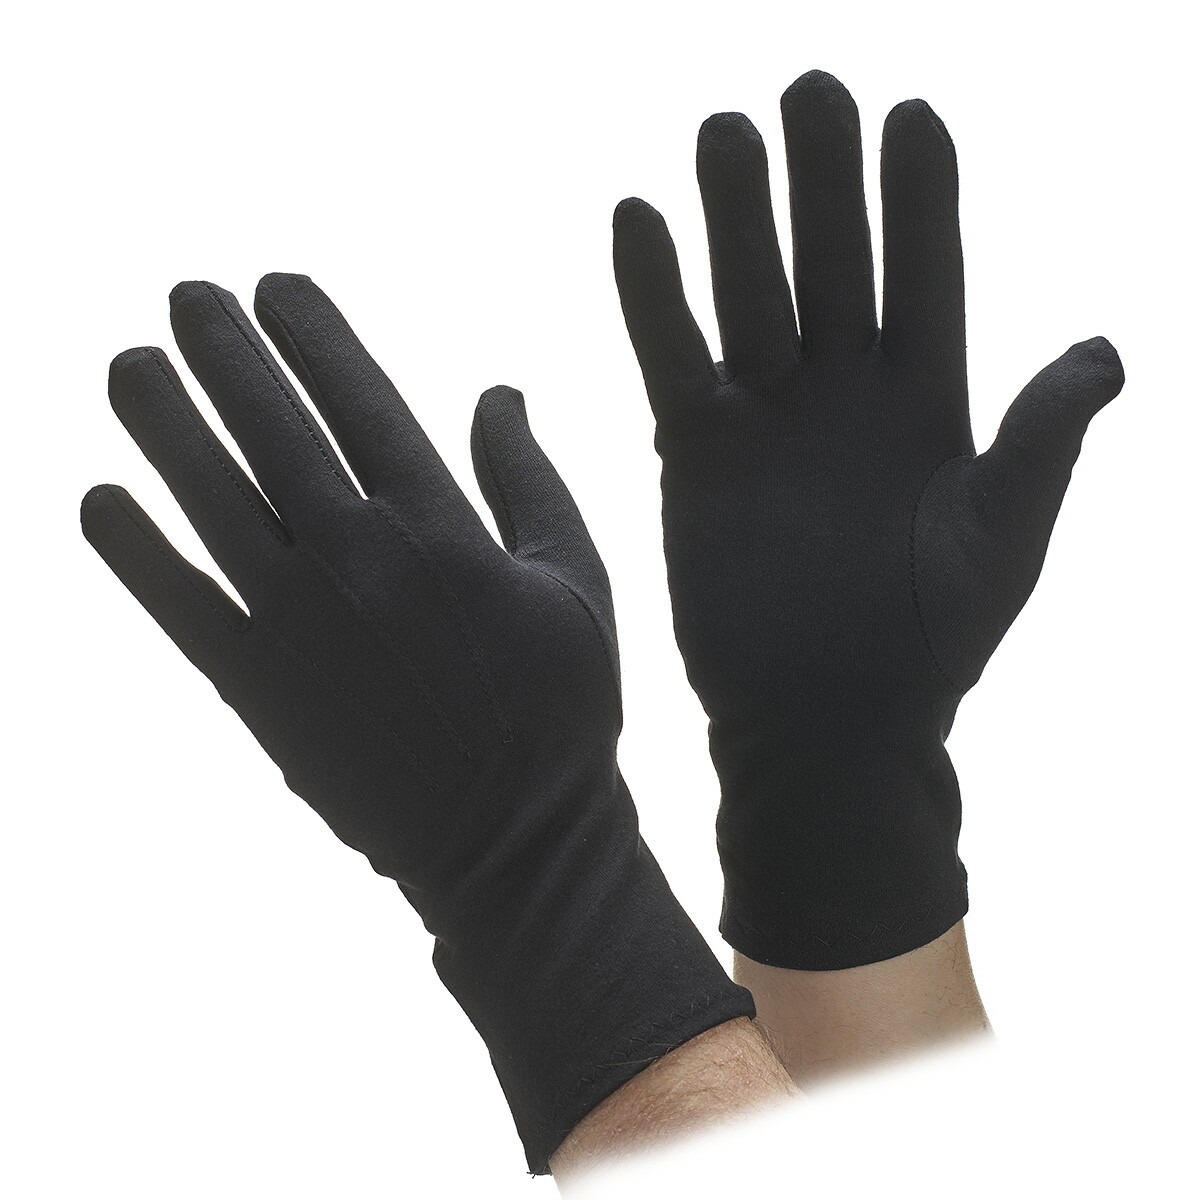 Black gloves online - Black Gloves Online 0